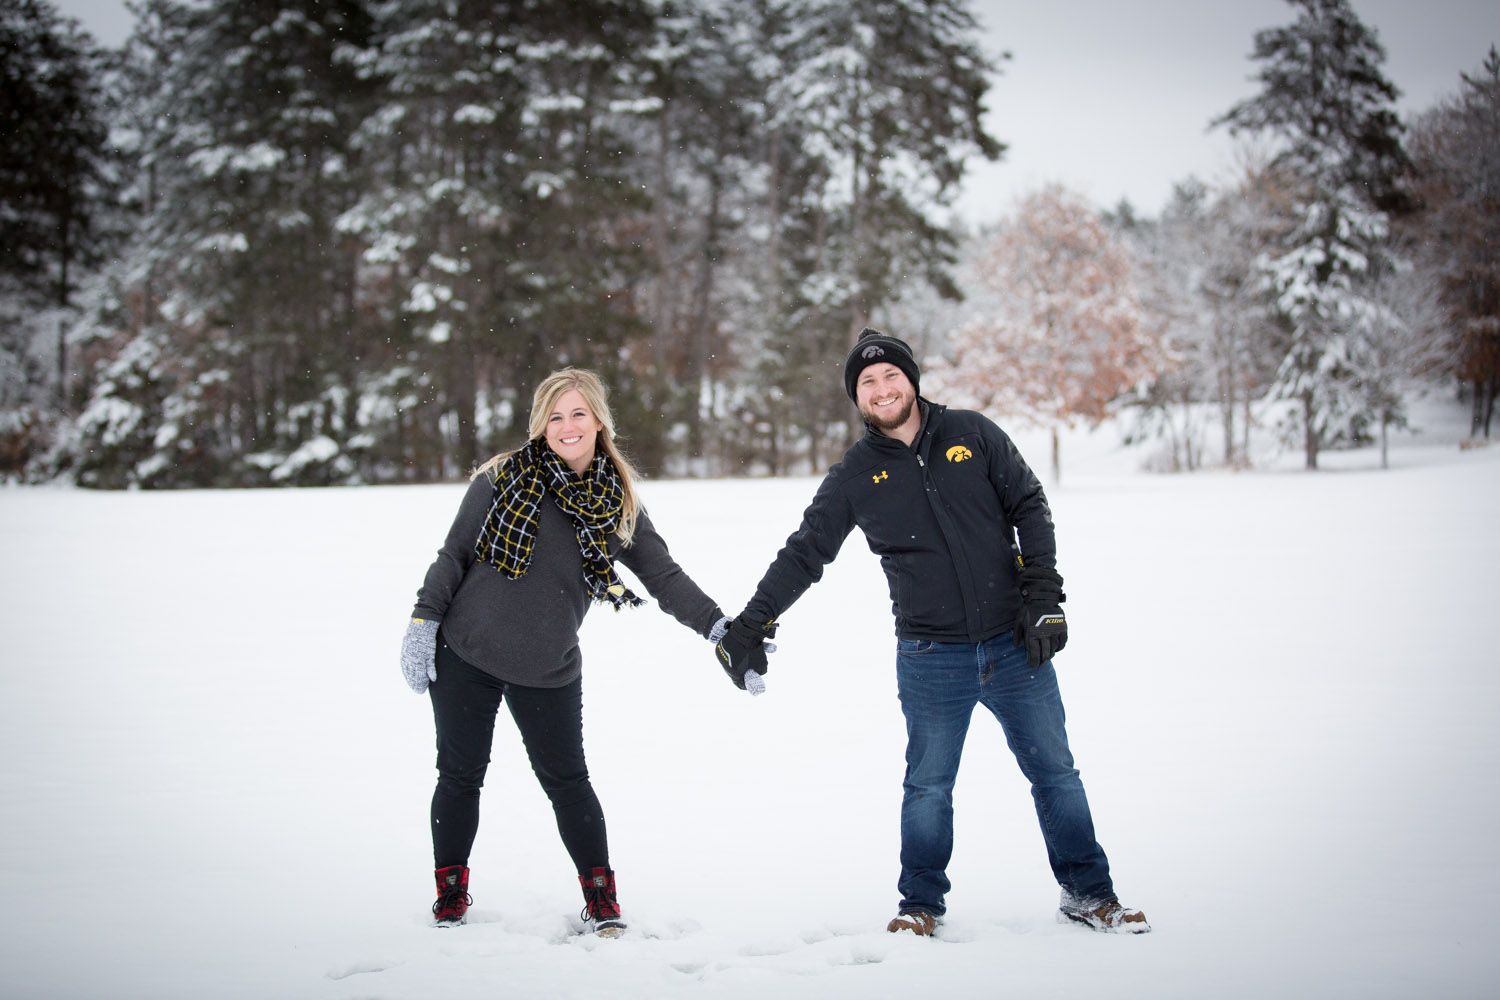 06-bunker-hill-regional-park-winter-wonderland-minnesota-engagement-photographer-snowy-day-snow-field-hawkeye-fans-fun-photo-session-mahonen-photography.jpg